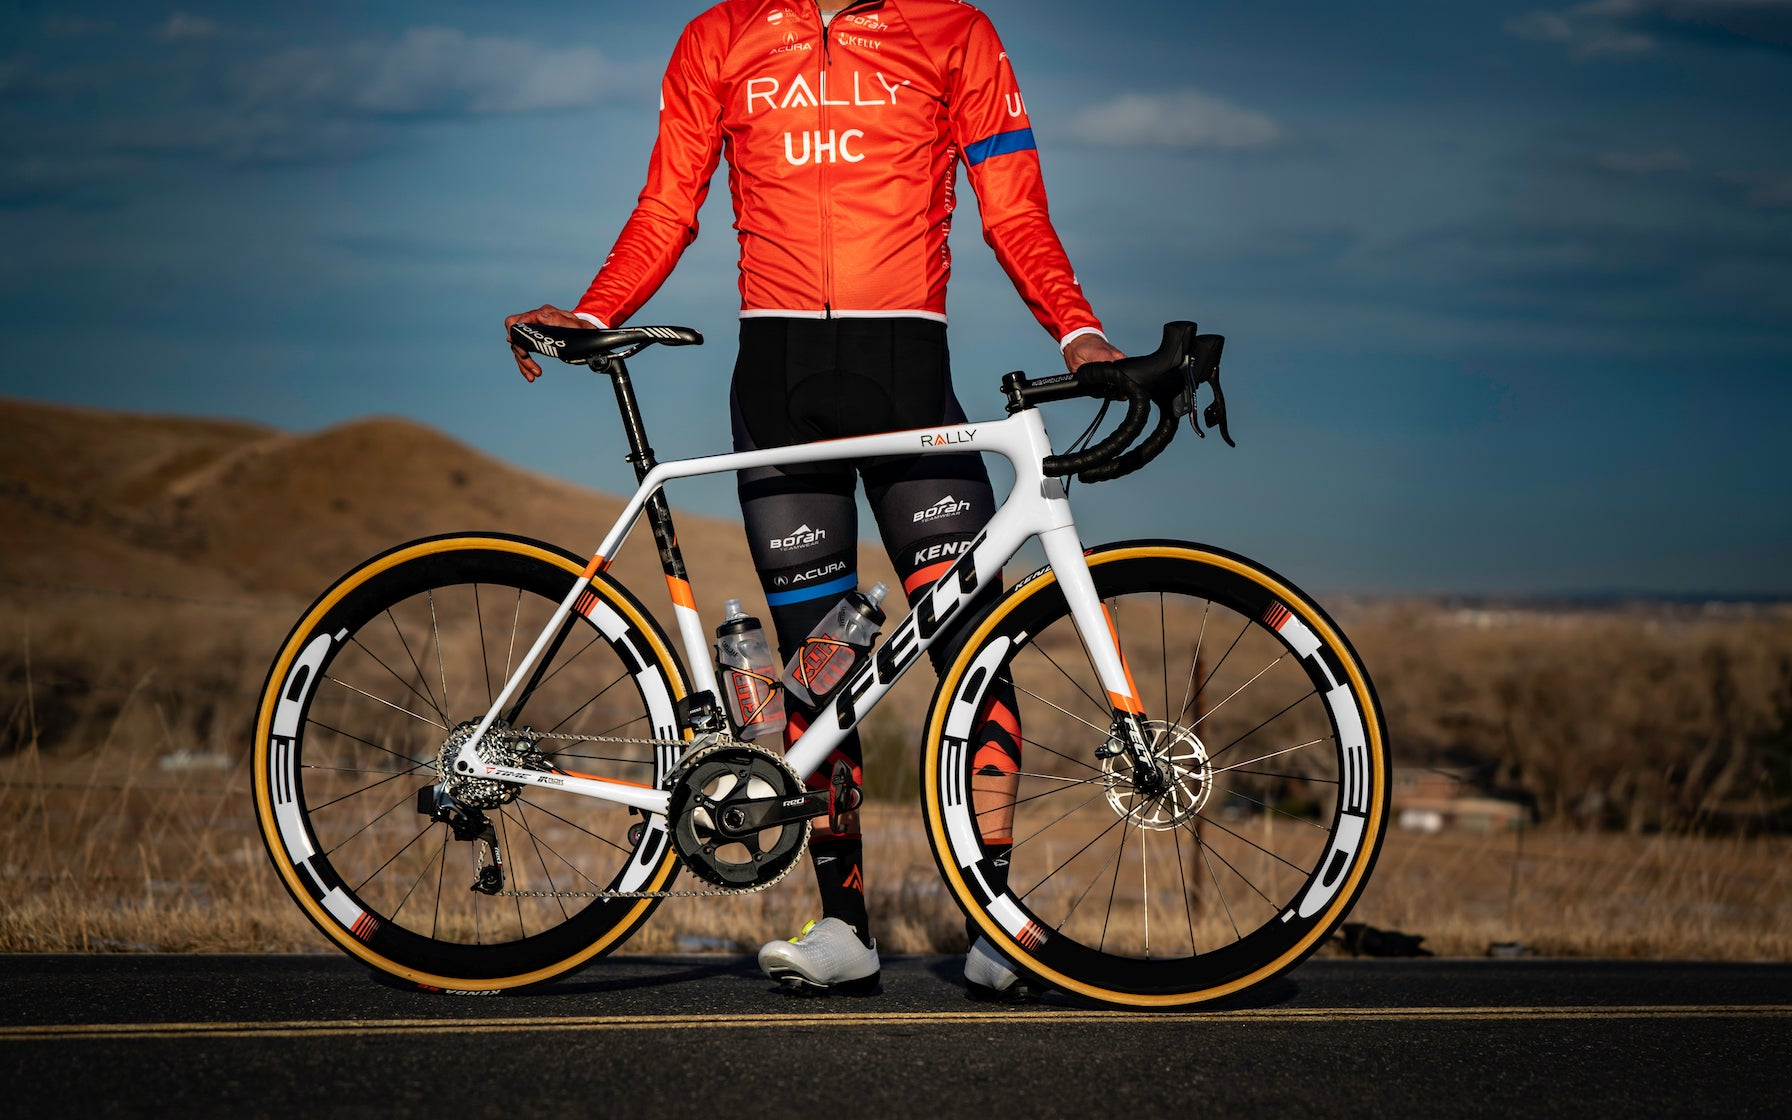 Felt Bicycles Partners With Rally UHC Cycling Pro Men's & Women's Programs